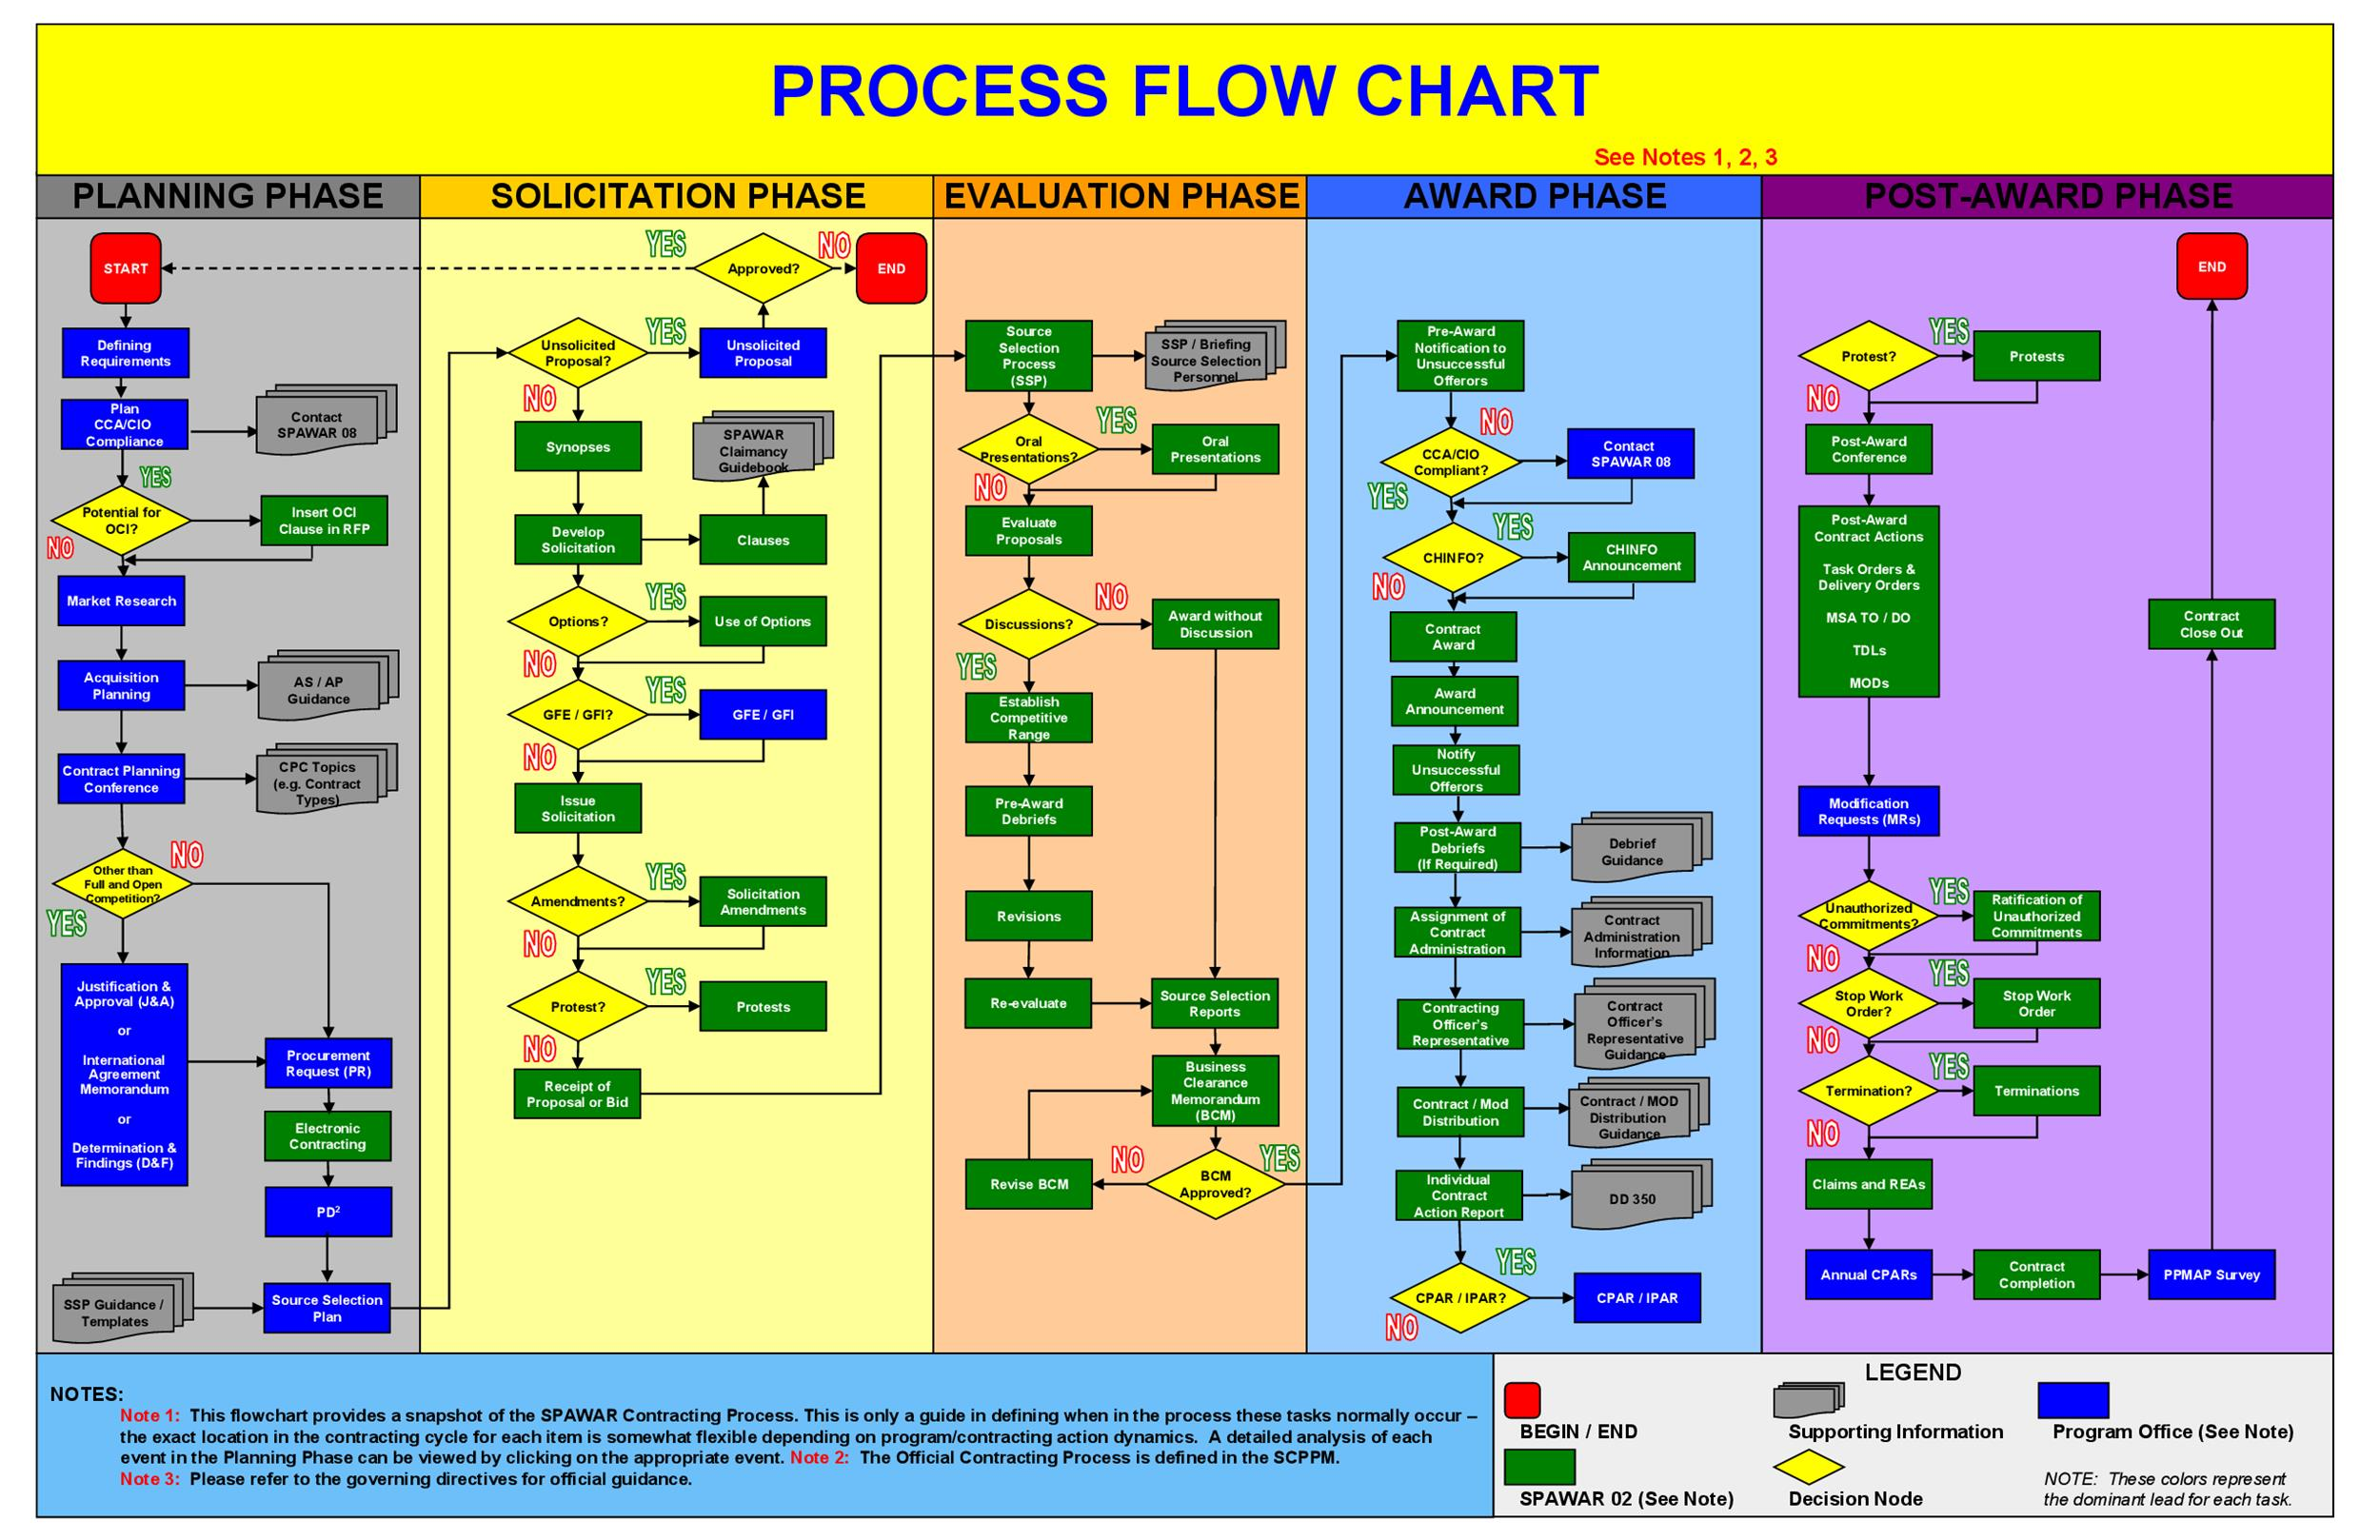 40 fantastic flow chart templates [word, excel, power point] Excel Data Mapping Template free flow chart template 06